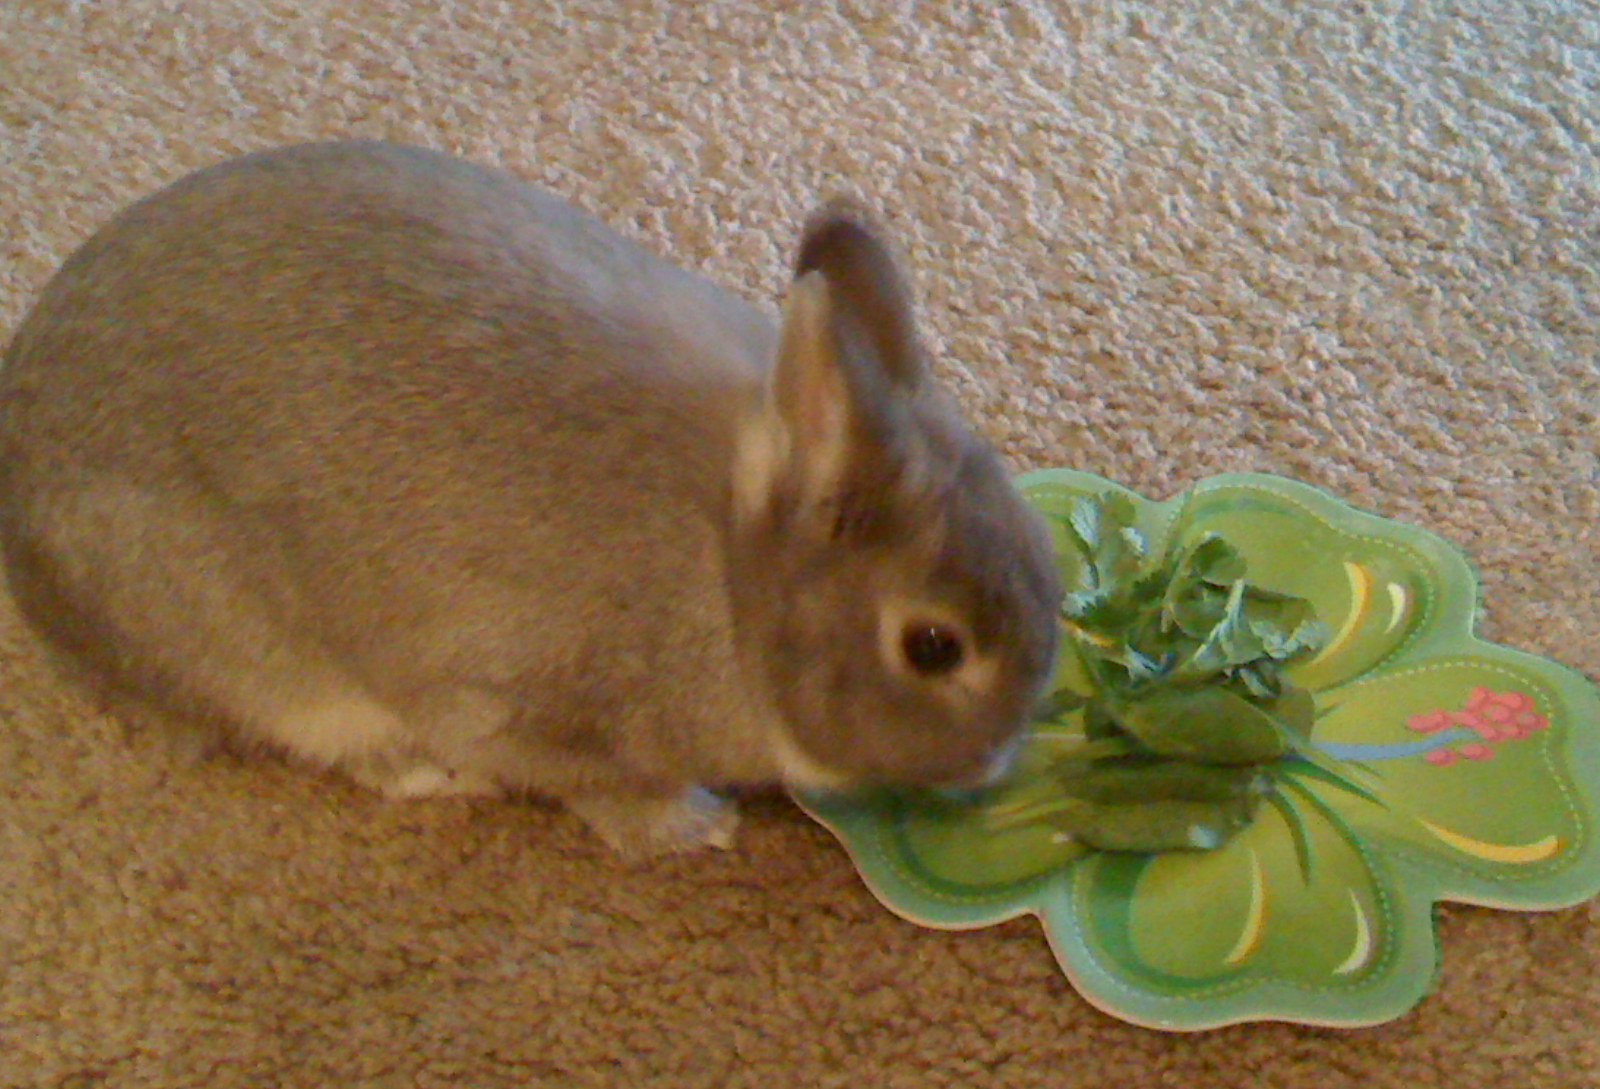 Rabbit eats spinach from plate